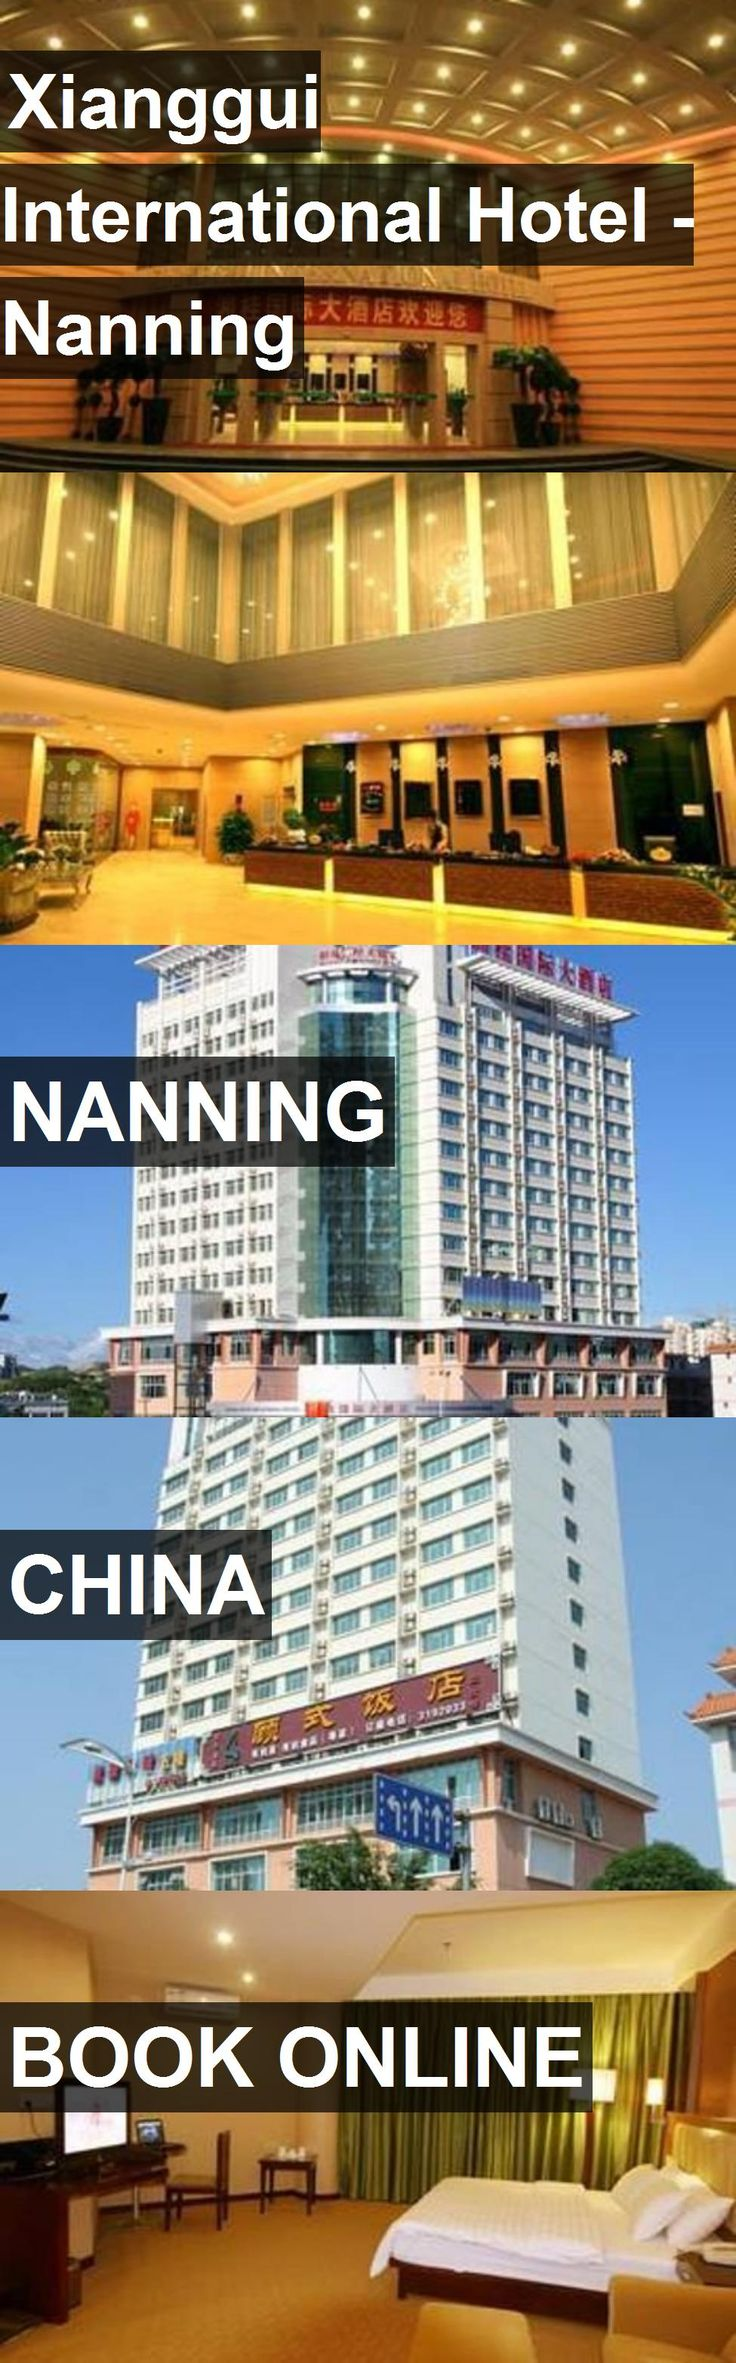 Hotel Xianggui International Hotel - Nanning in Nanning, China. For more information, photos, reviews and best prices please follow the link. #China #Nanning #XiangguiInternationalHotel-Nanning #hotel #travel #vacation